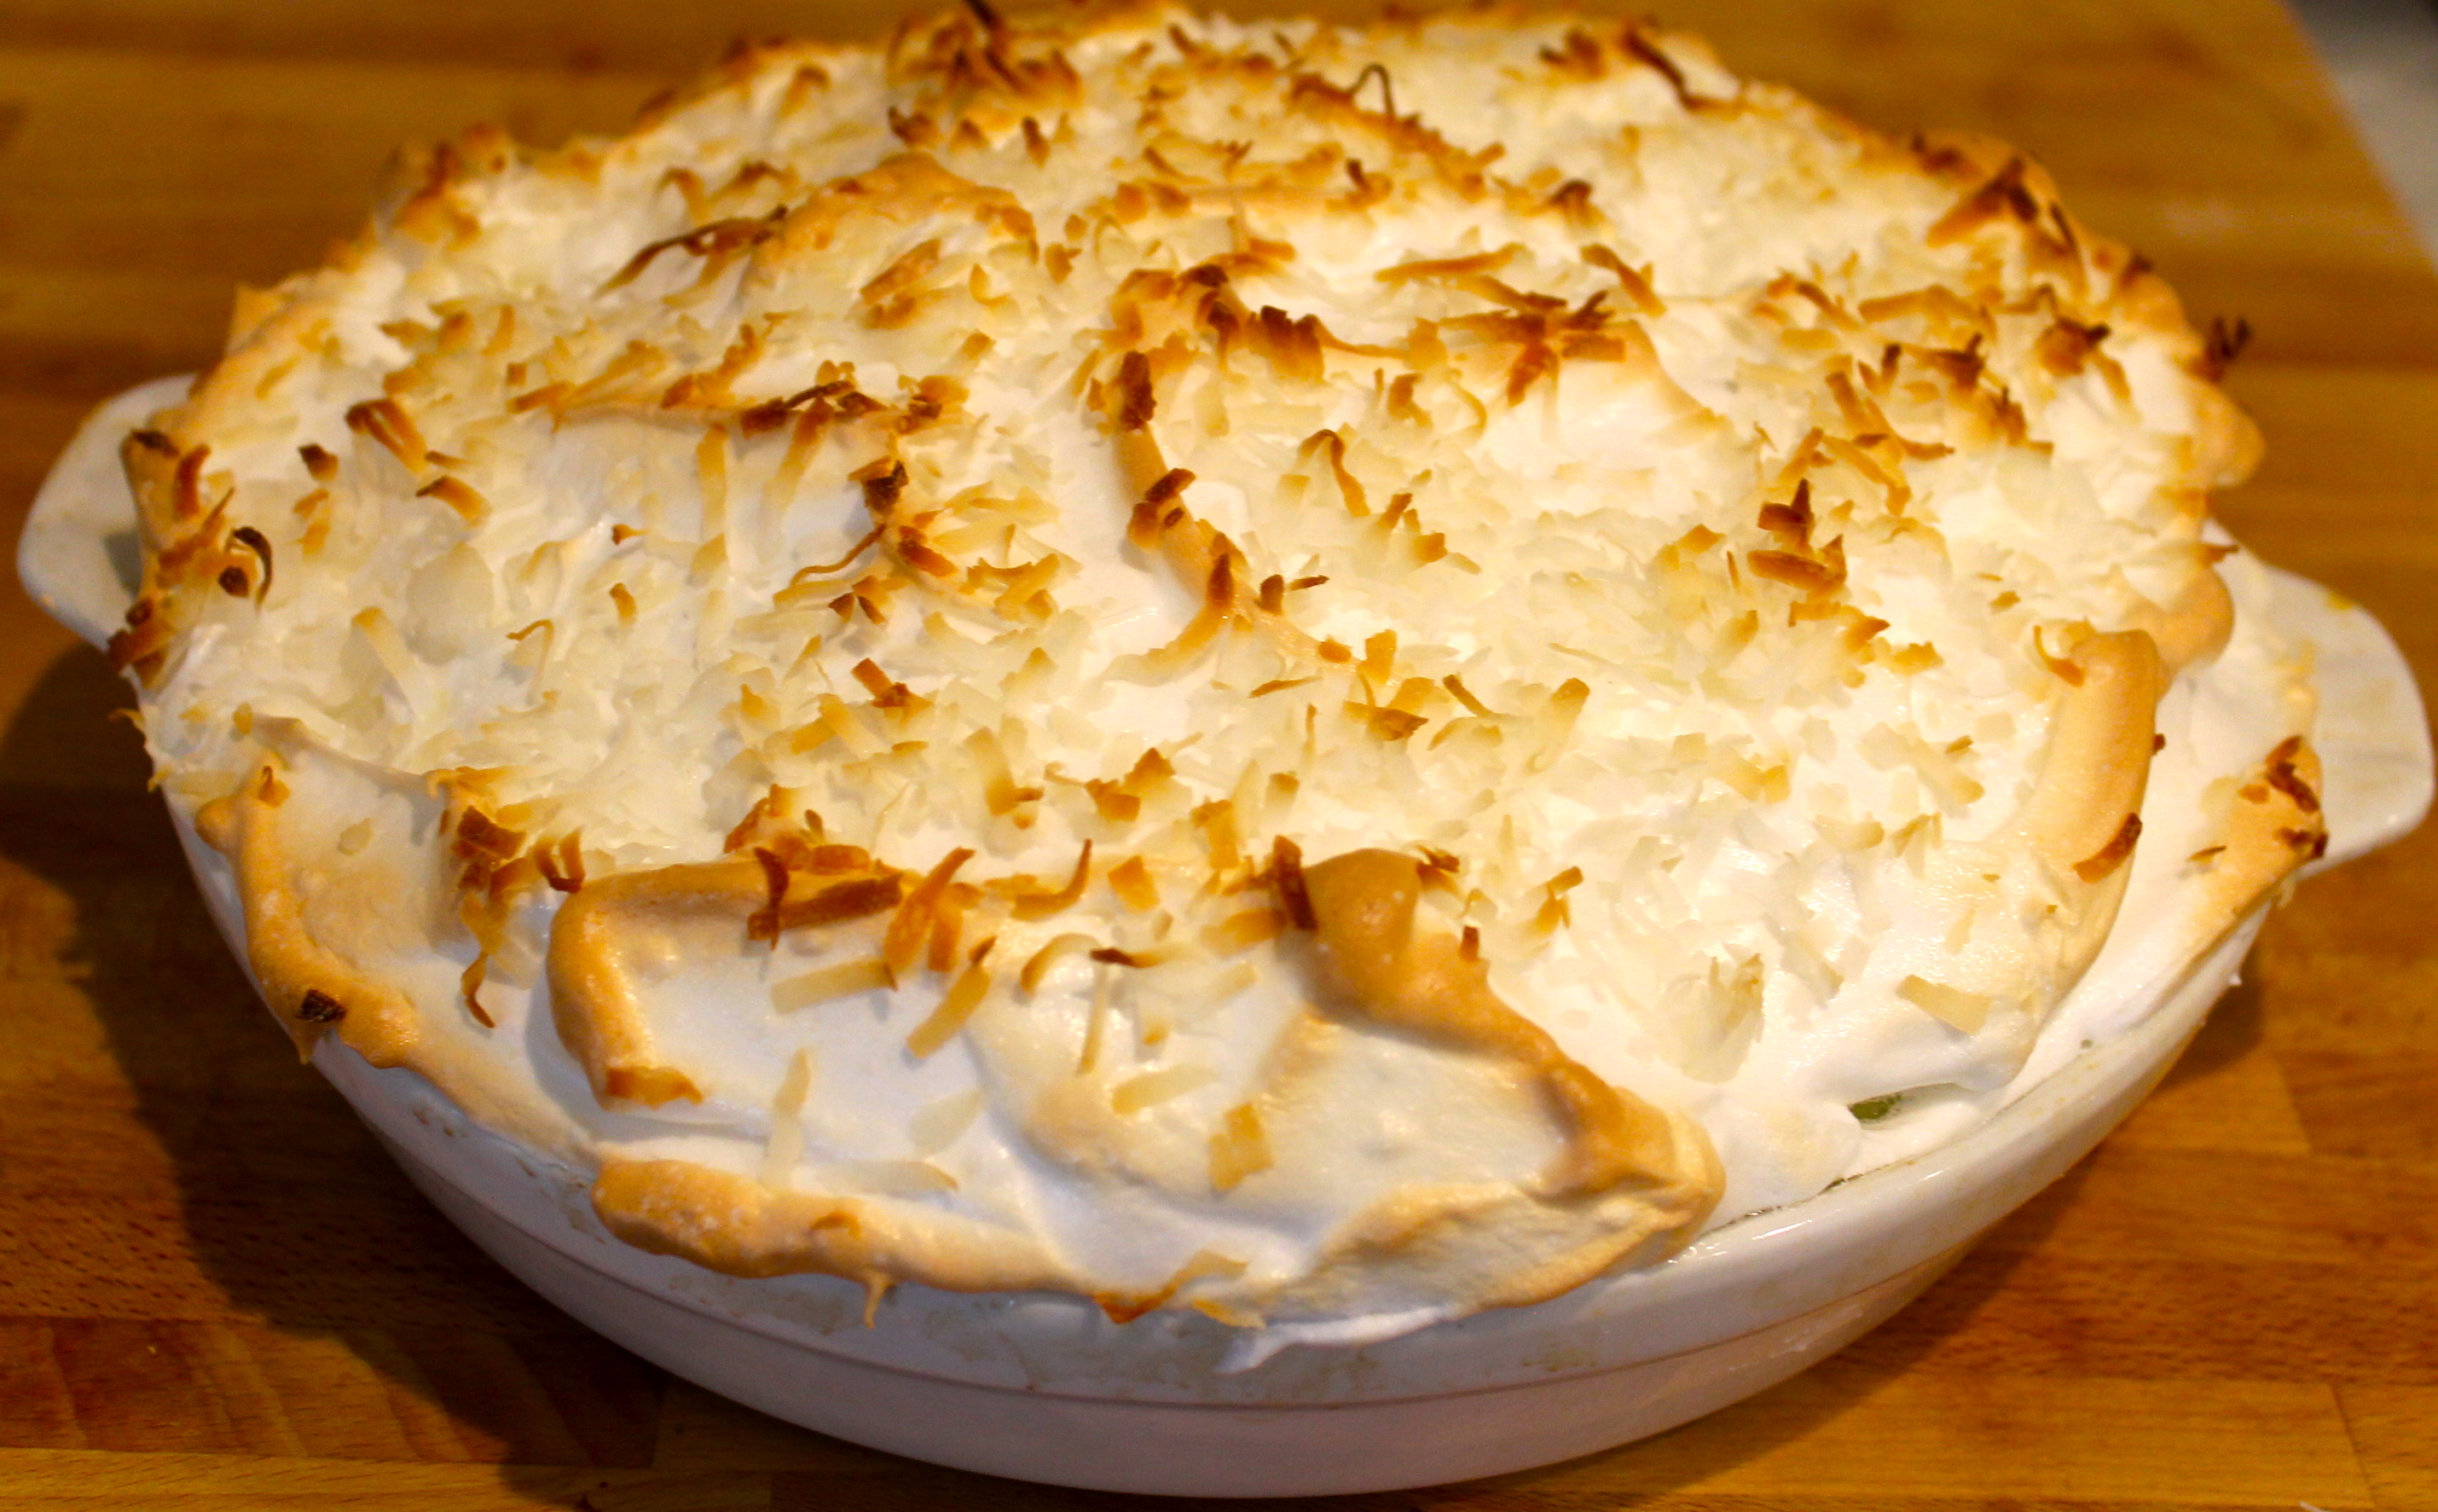 IMG 2994 - Old-Fashioned Coconut Cream Pie